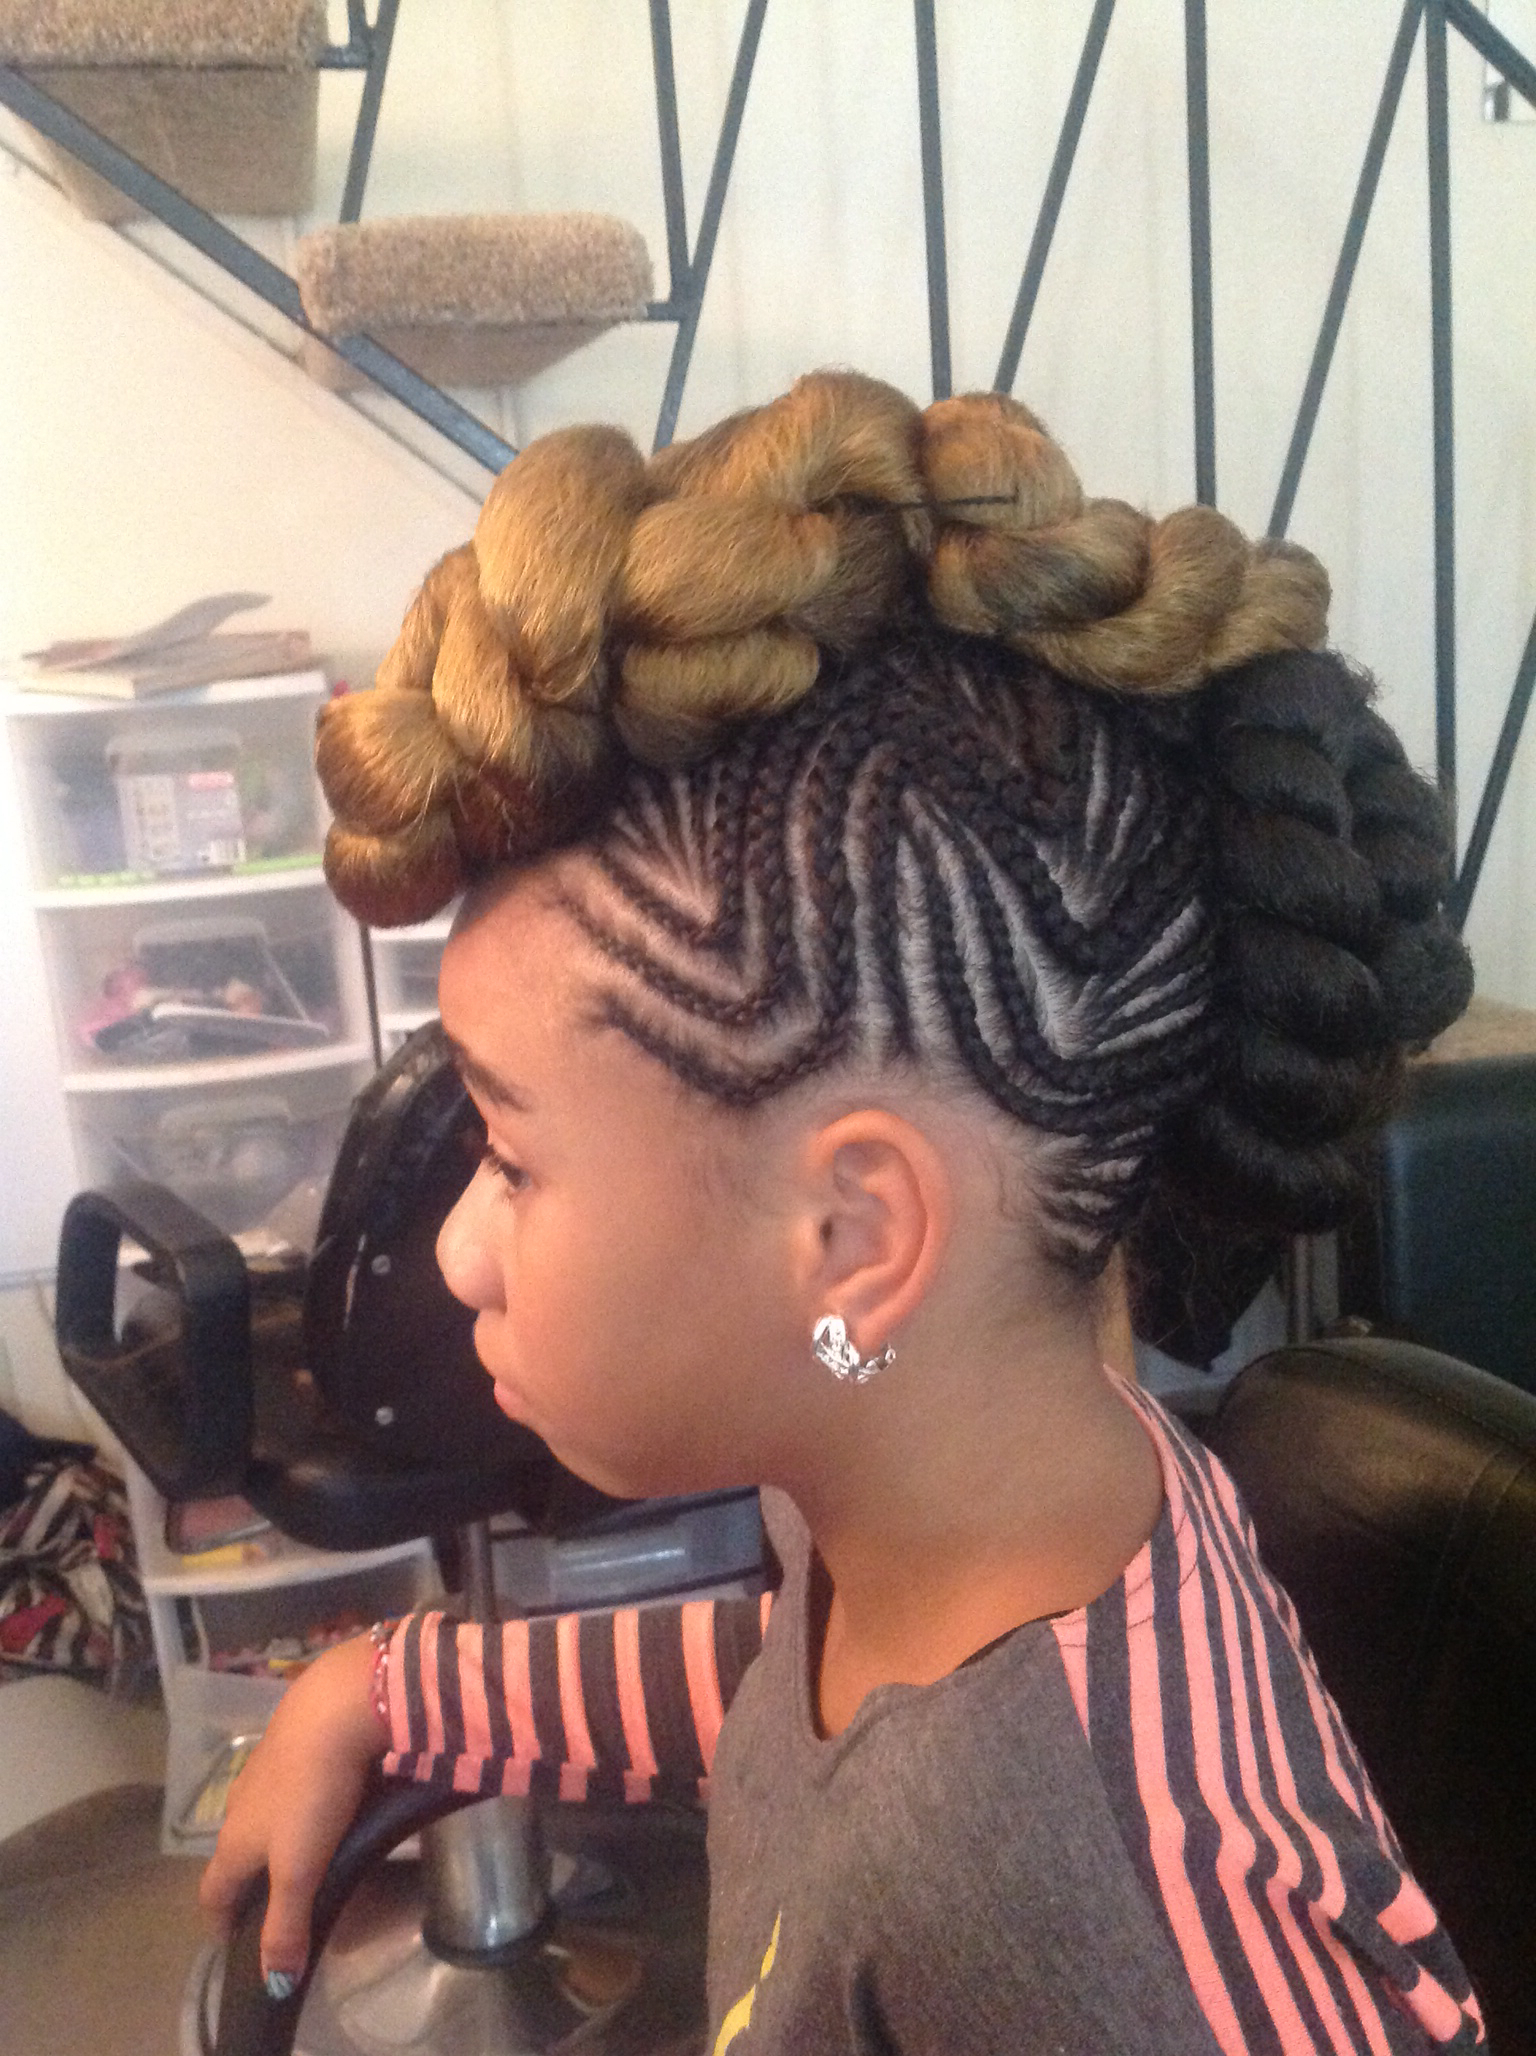 Latest Twist Braided Mohawk Hairstyles Intended For 15 Foremost Braided Mohawk Hairstyles – Mohawk With Braids (View 15 of 20)